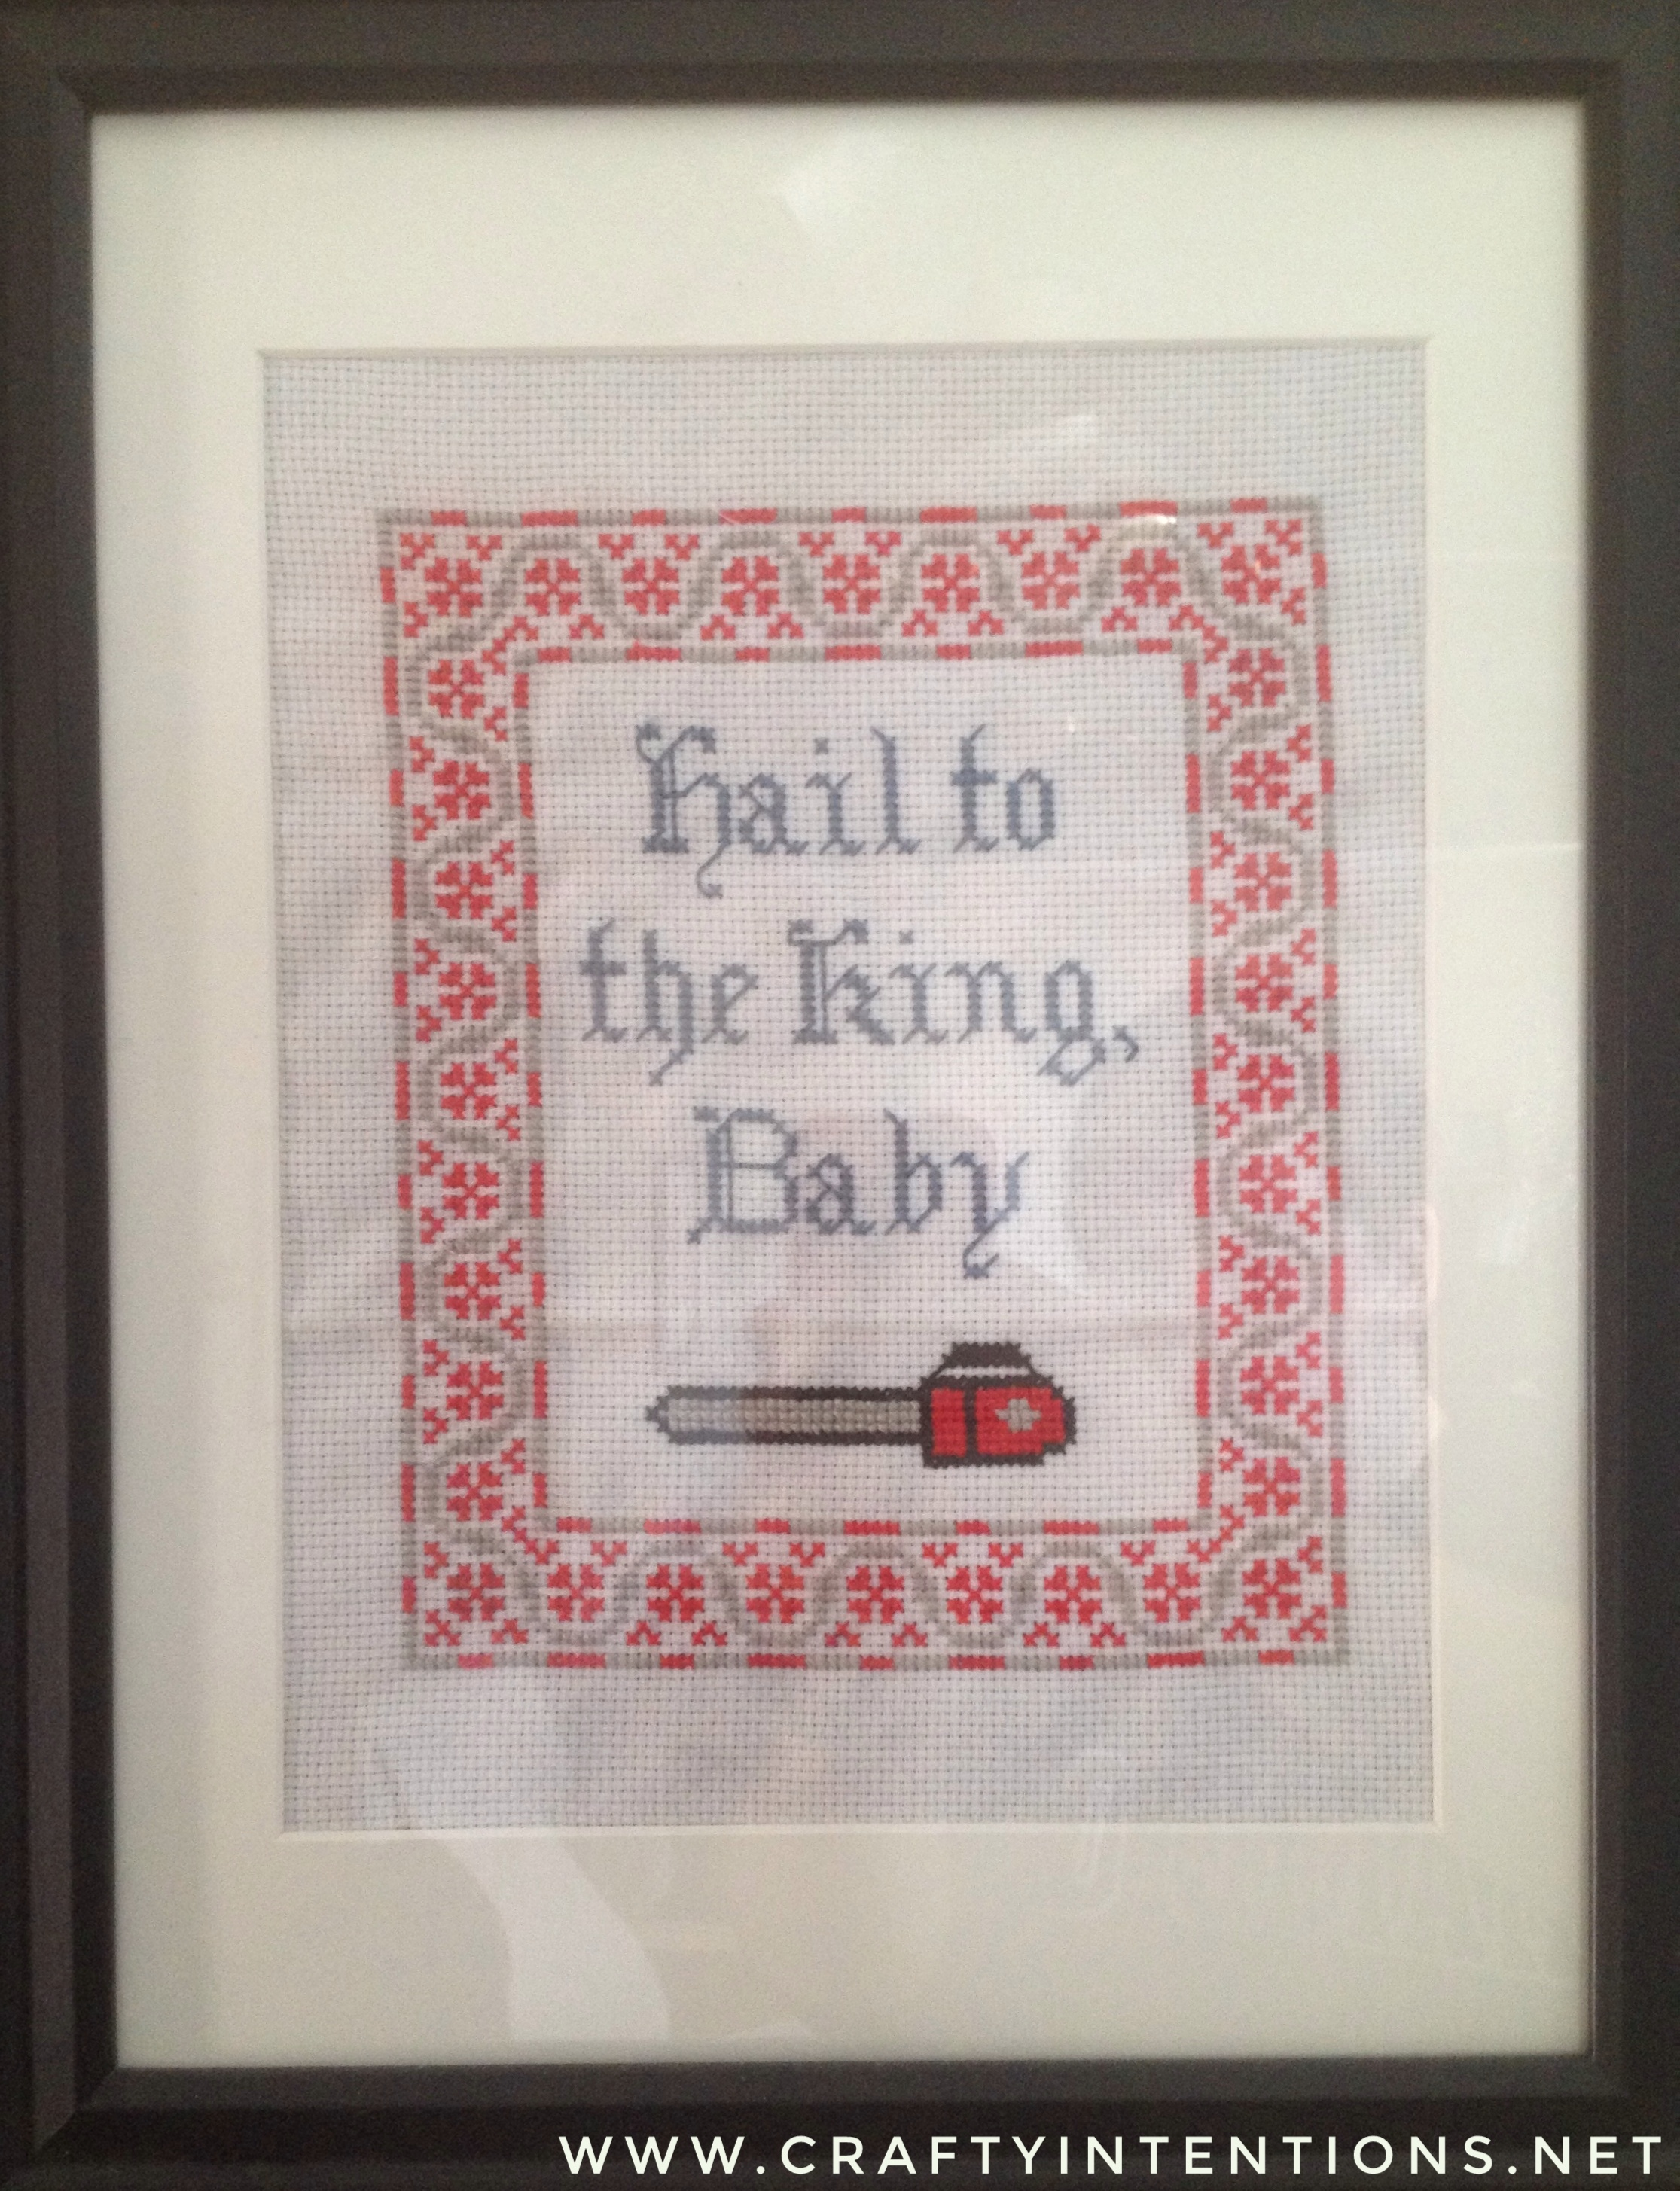 2008 Hail to the King Baby Cross Stitch-01.jpeg